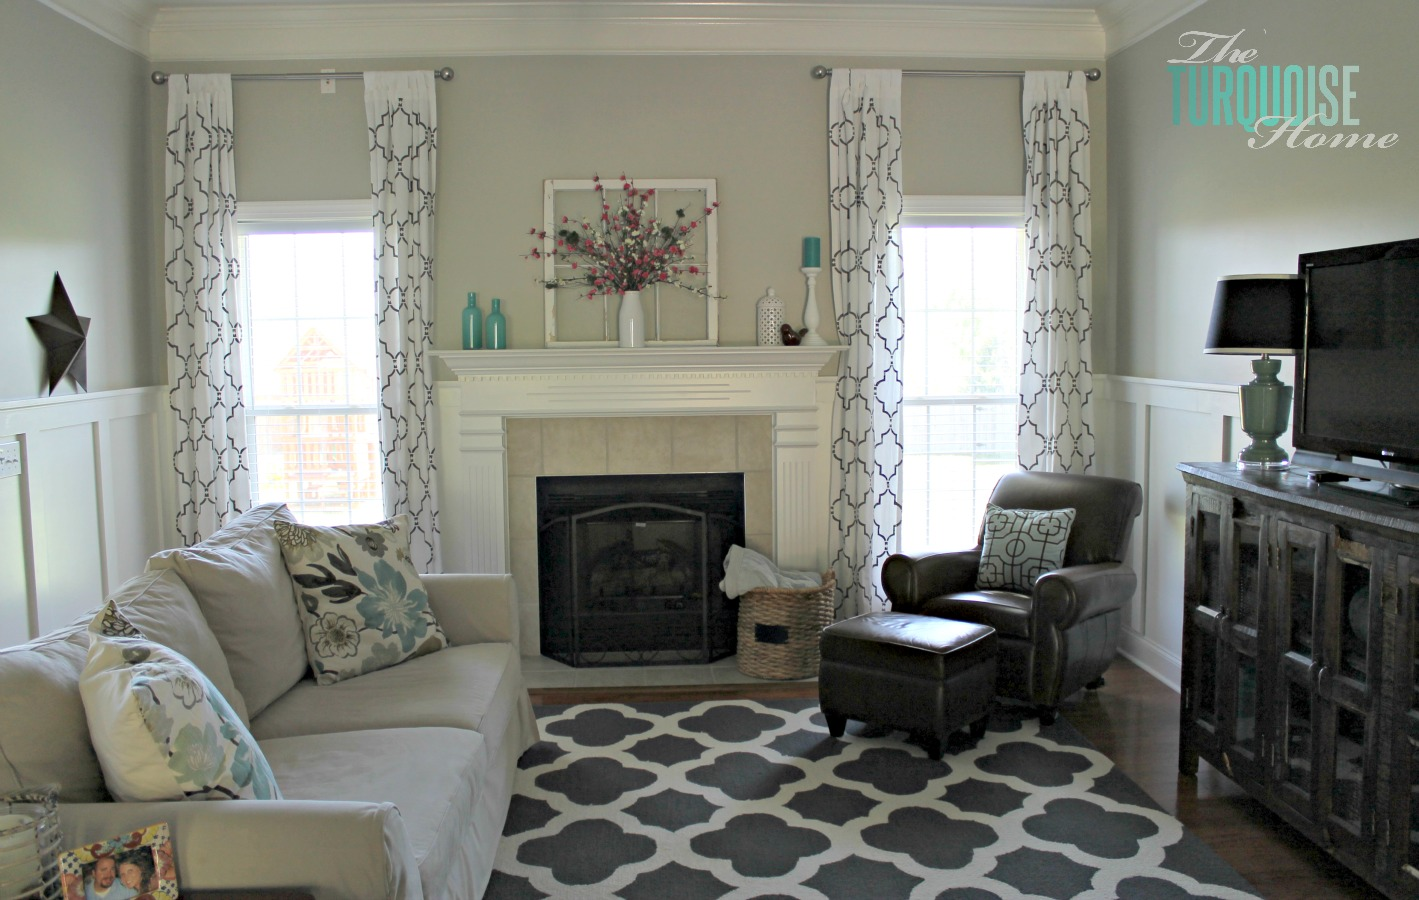 Awesome Gorgeous Living Room Makeover With Beautiful DIY Board And Batten, Pottery  Barn Sofa, Stenciled